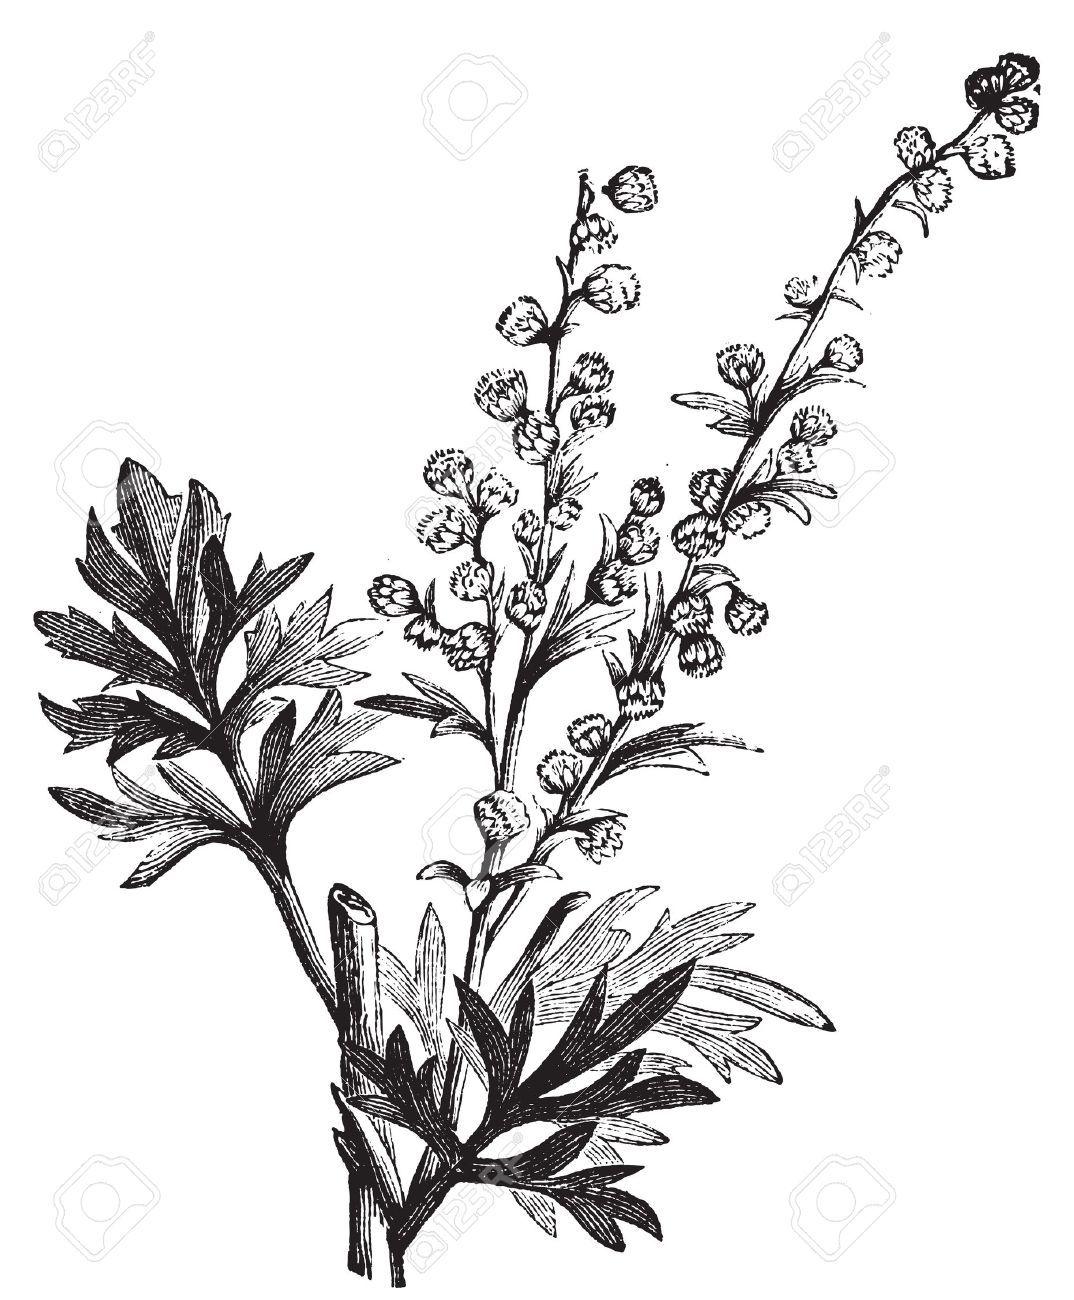 13770562-Absinthe-plant-Artemisia-absinthium-or-wormwood-engraving-illustration--Stock-Photo.jpg 1.074×1.300 piksel